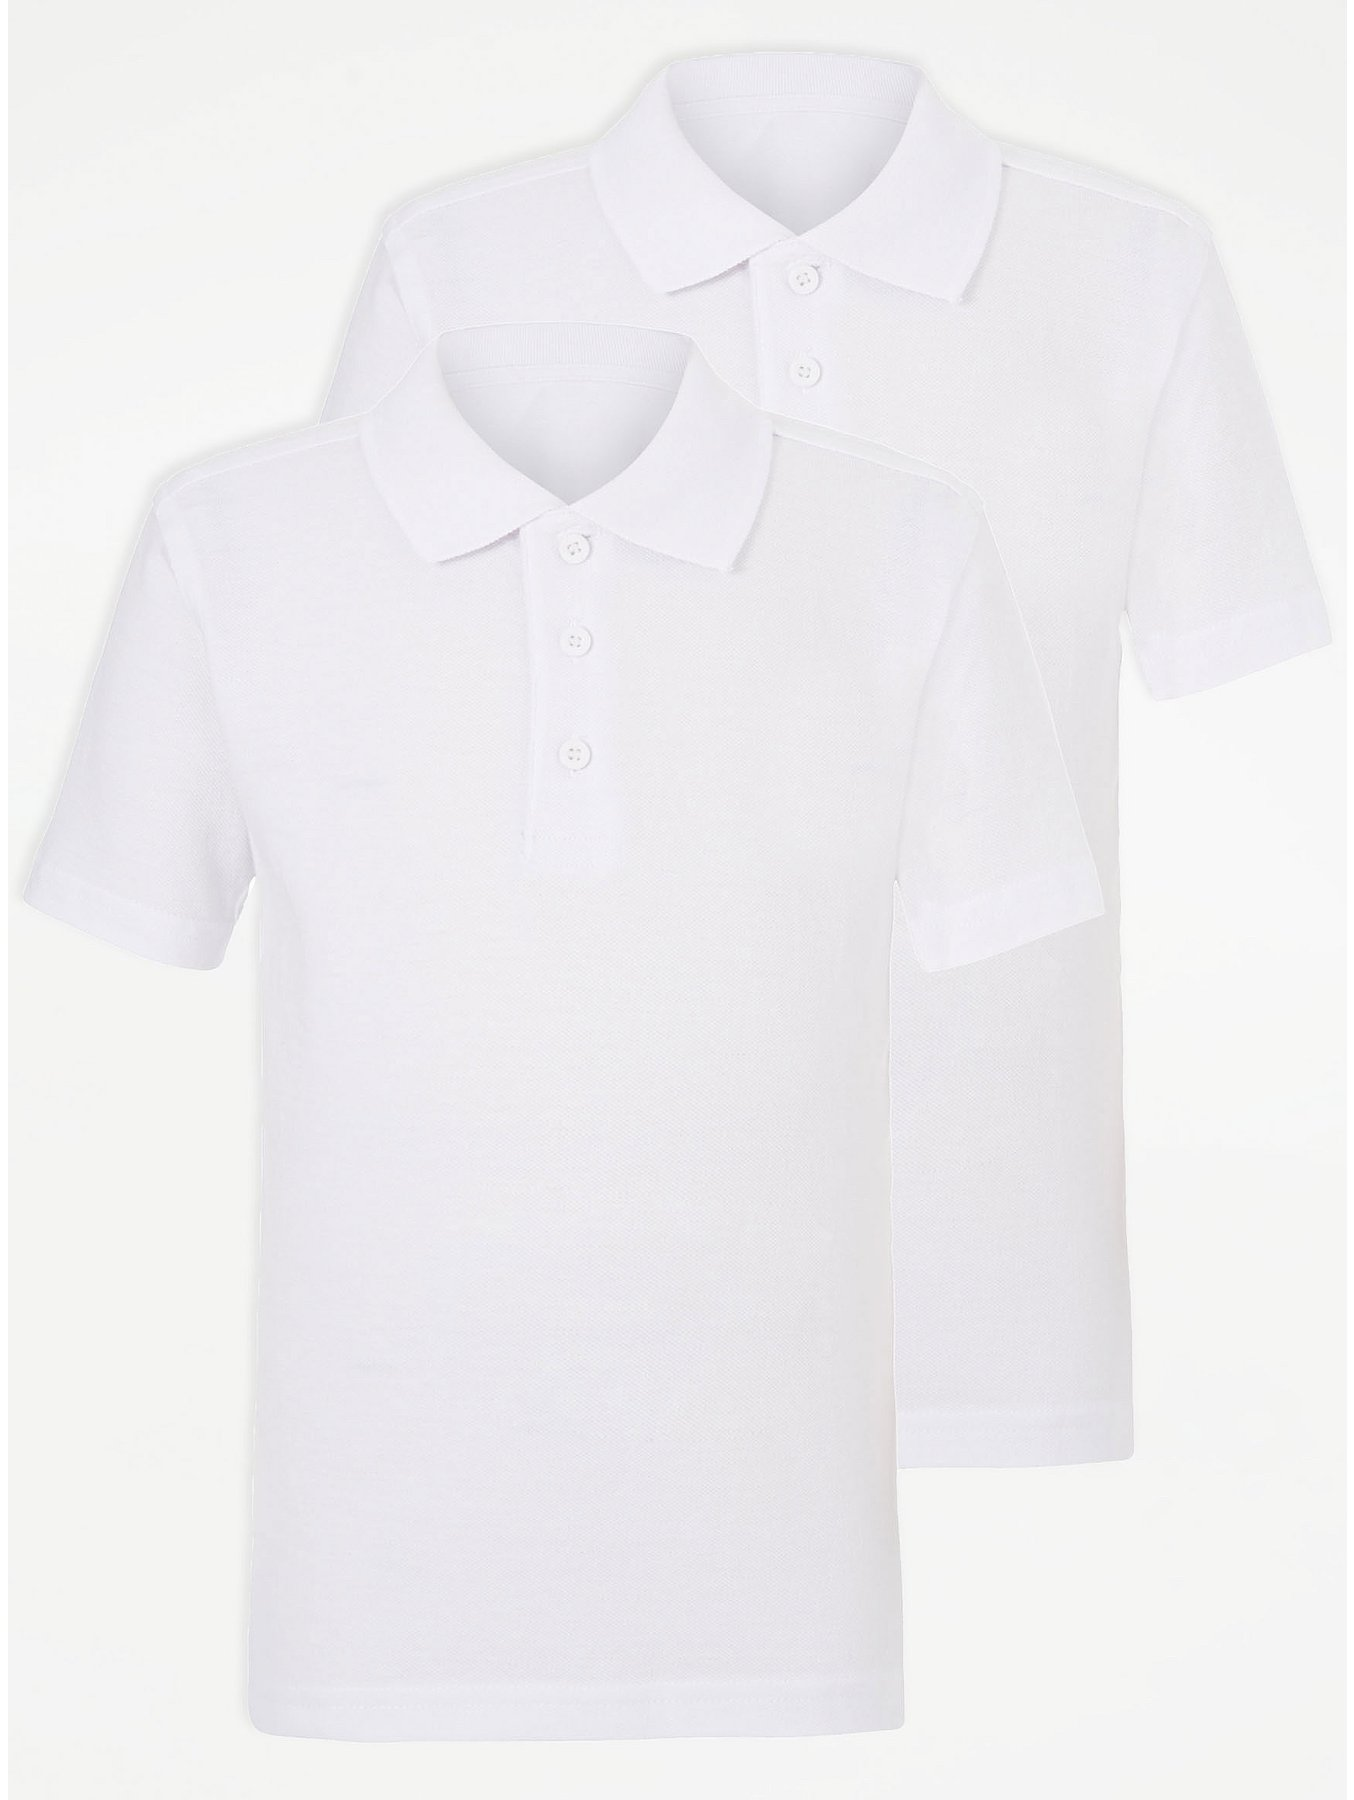 b59a91417 White School Polo Shirt 2 Pack